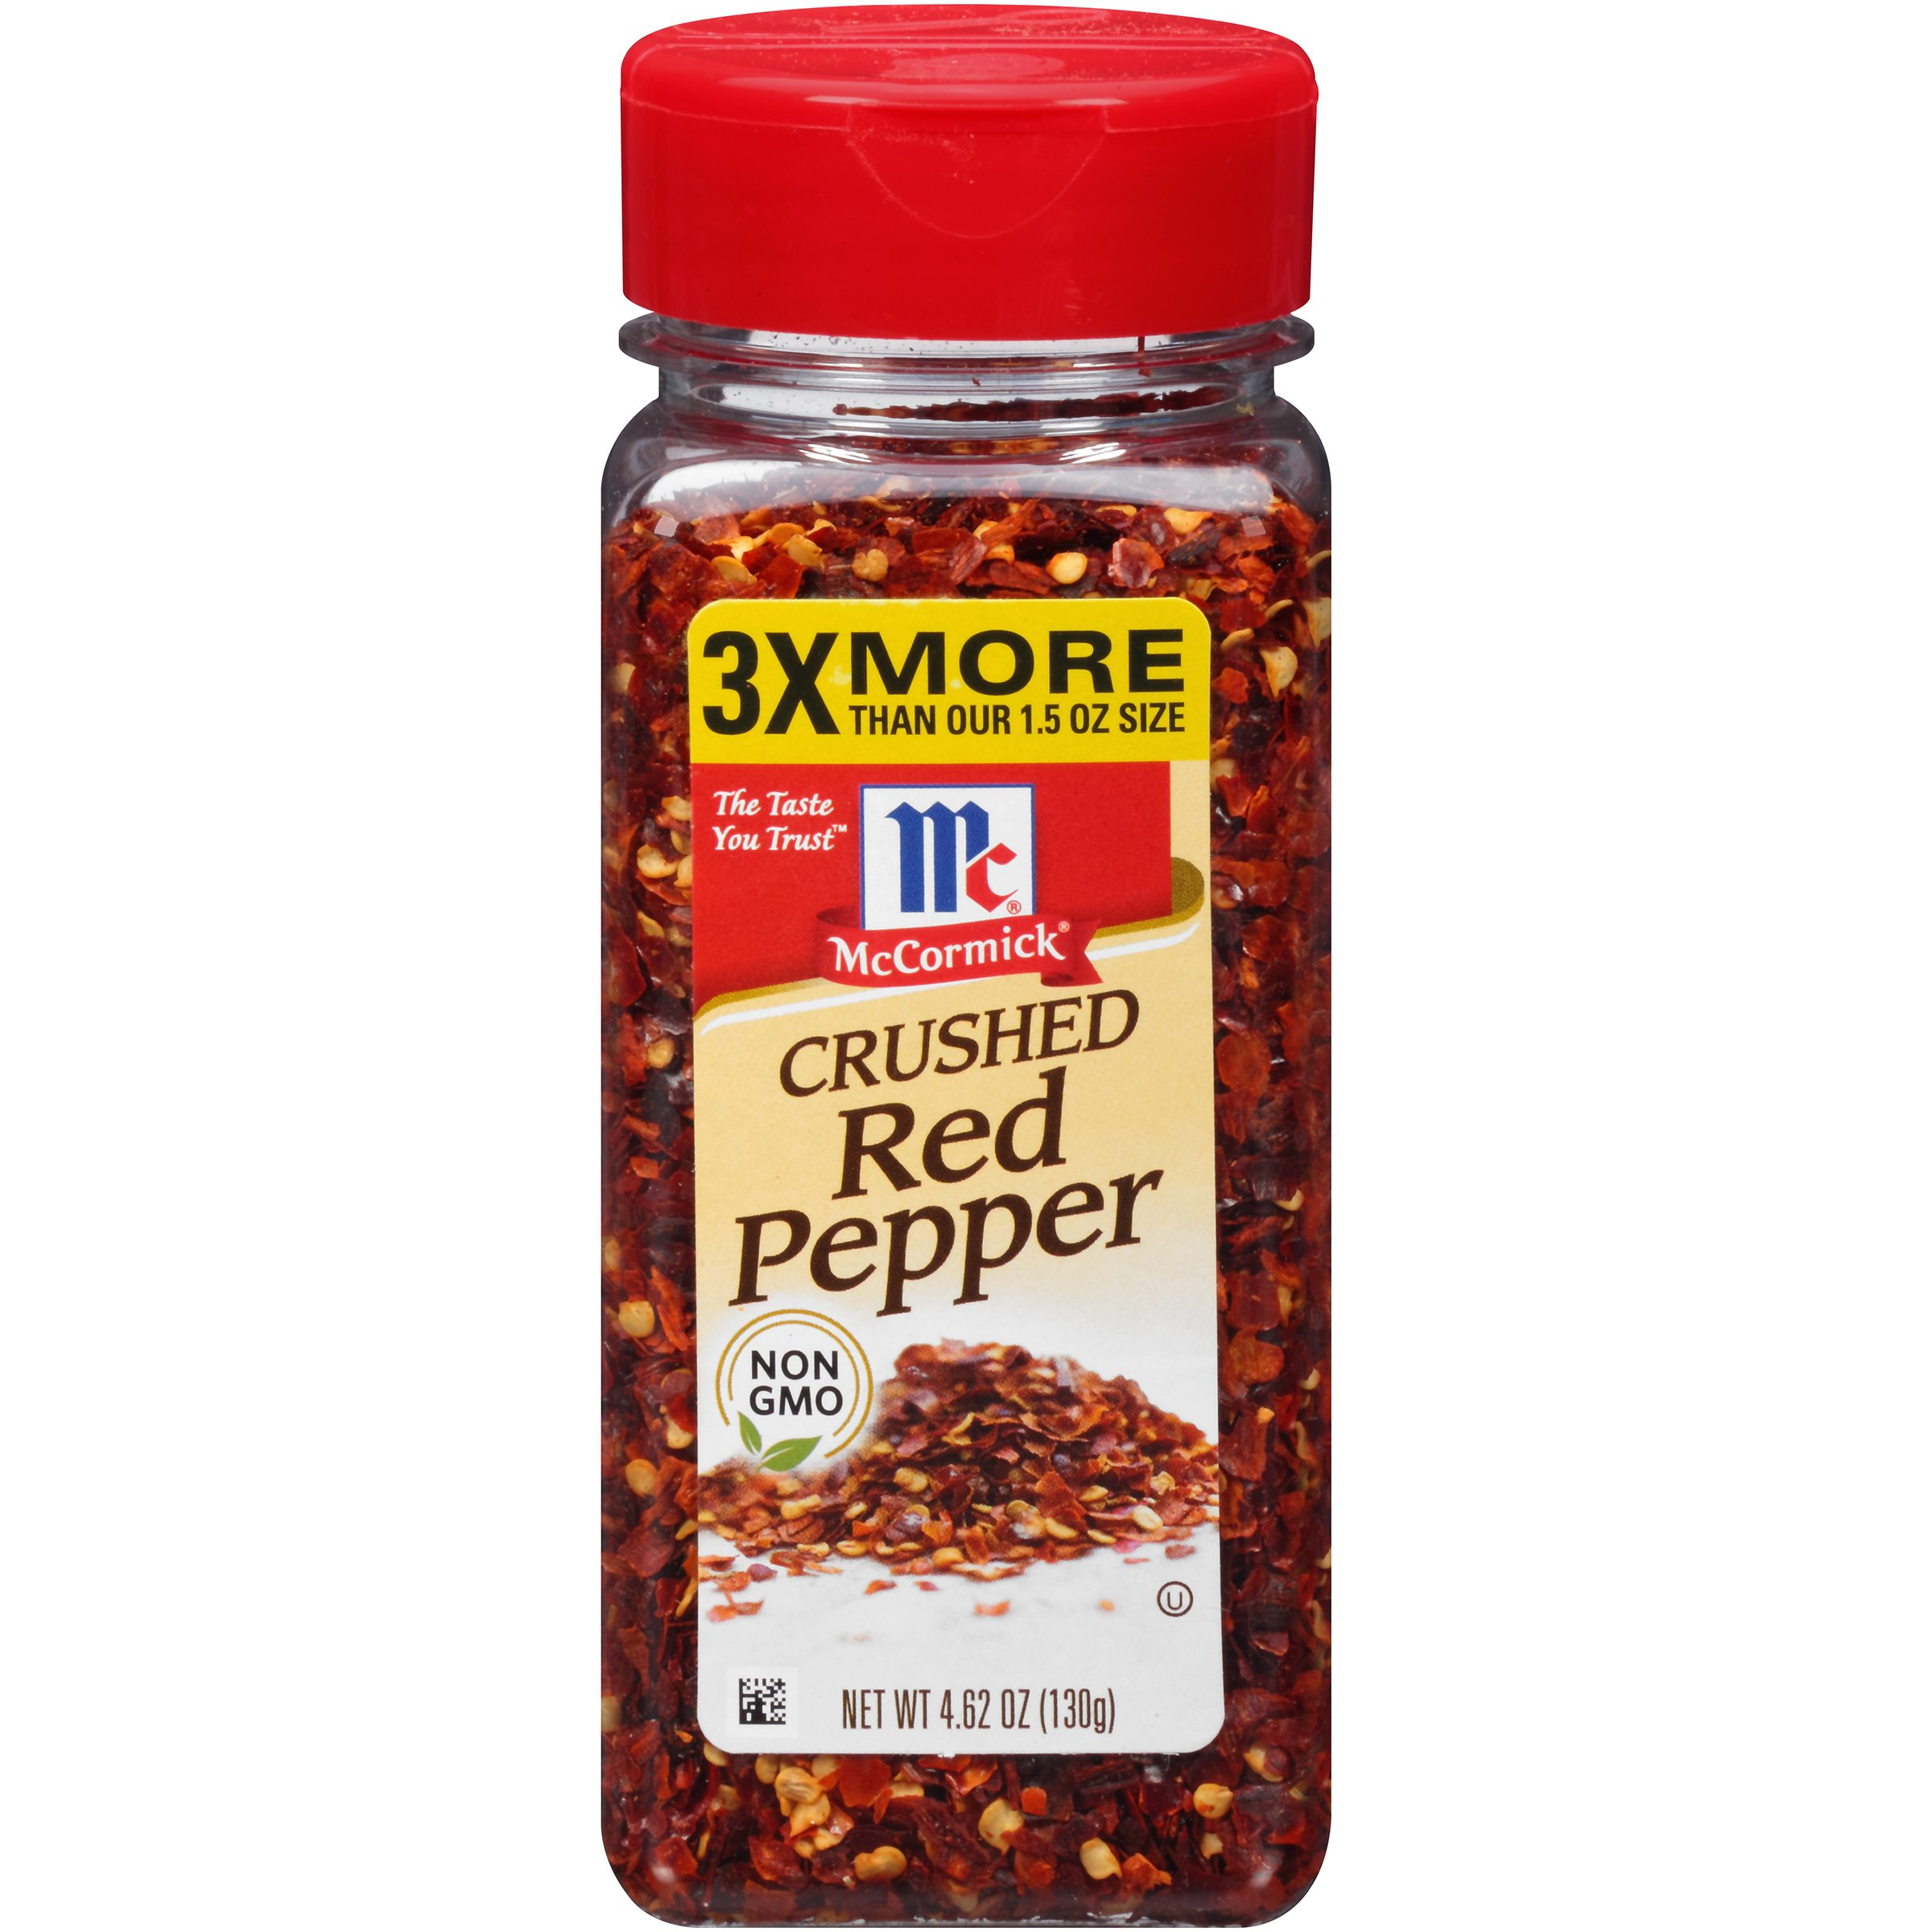 McCormick Crushed Red Pepper, 4.62 OZ (Pack of 1) by McCormick Spices (Image #1)